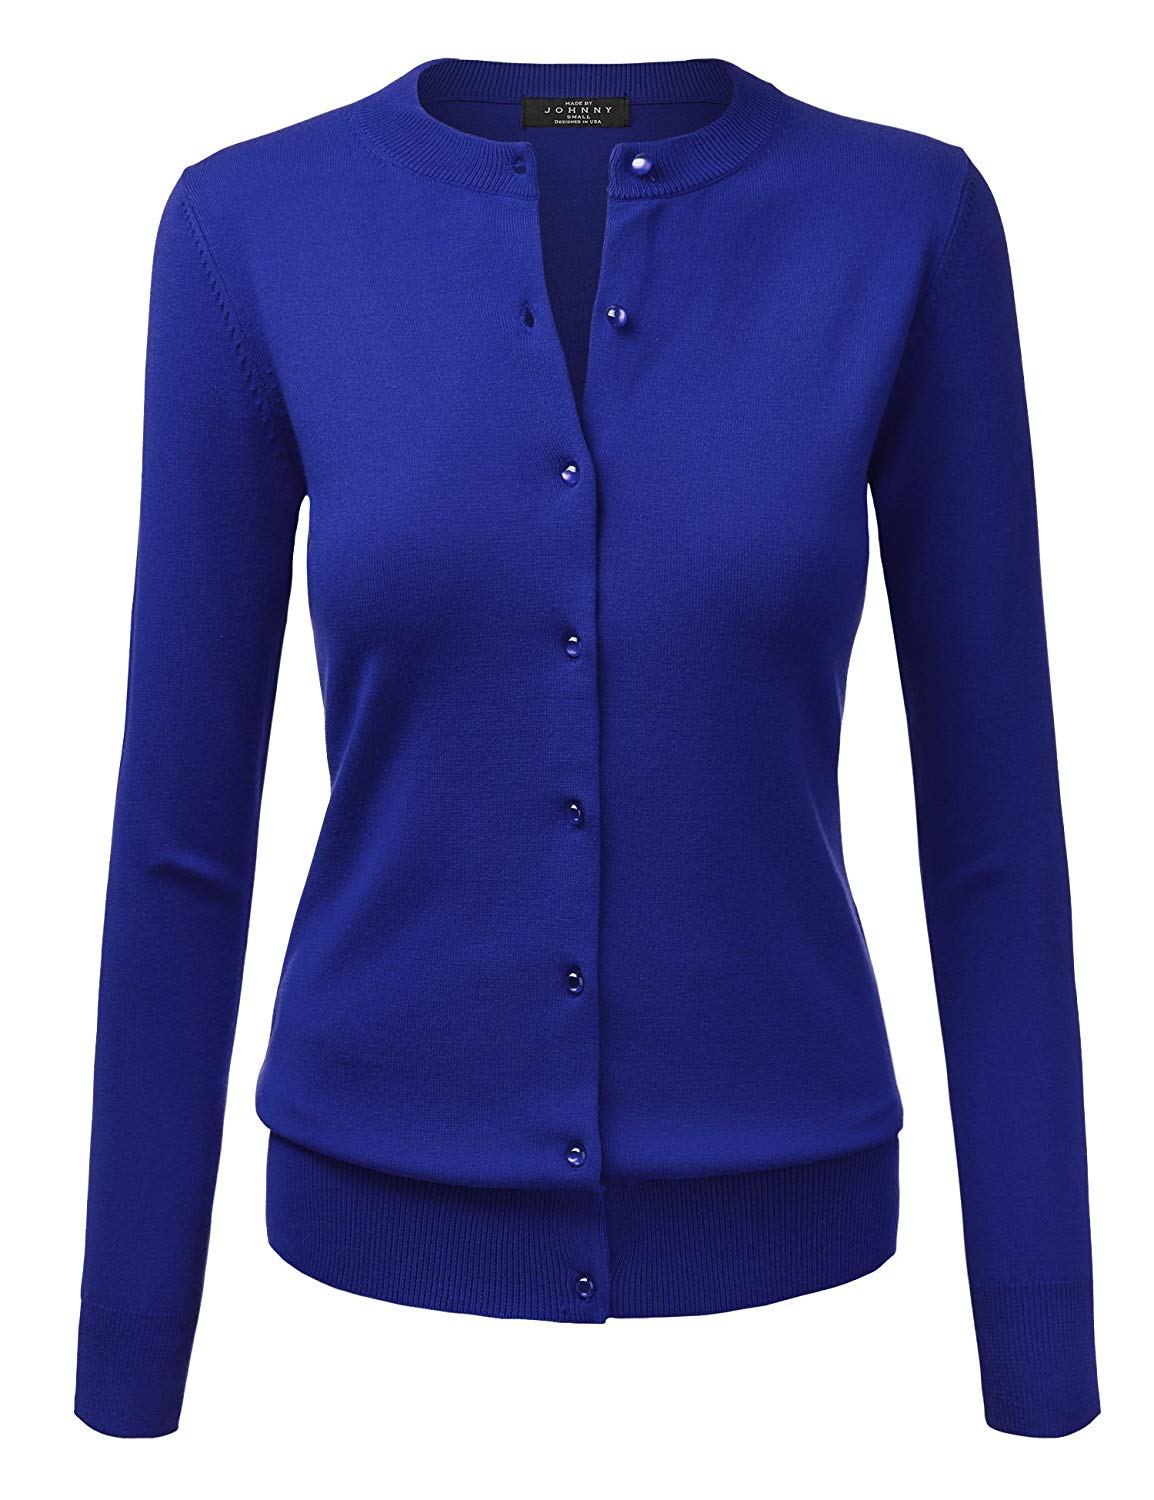 085e5f4db9af Get Quotations · Come Together California WSK781 Womens Keep It Classic  Round Cardigan XXL Royal Blue